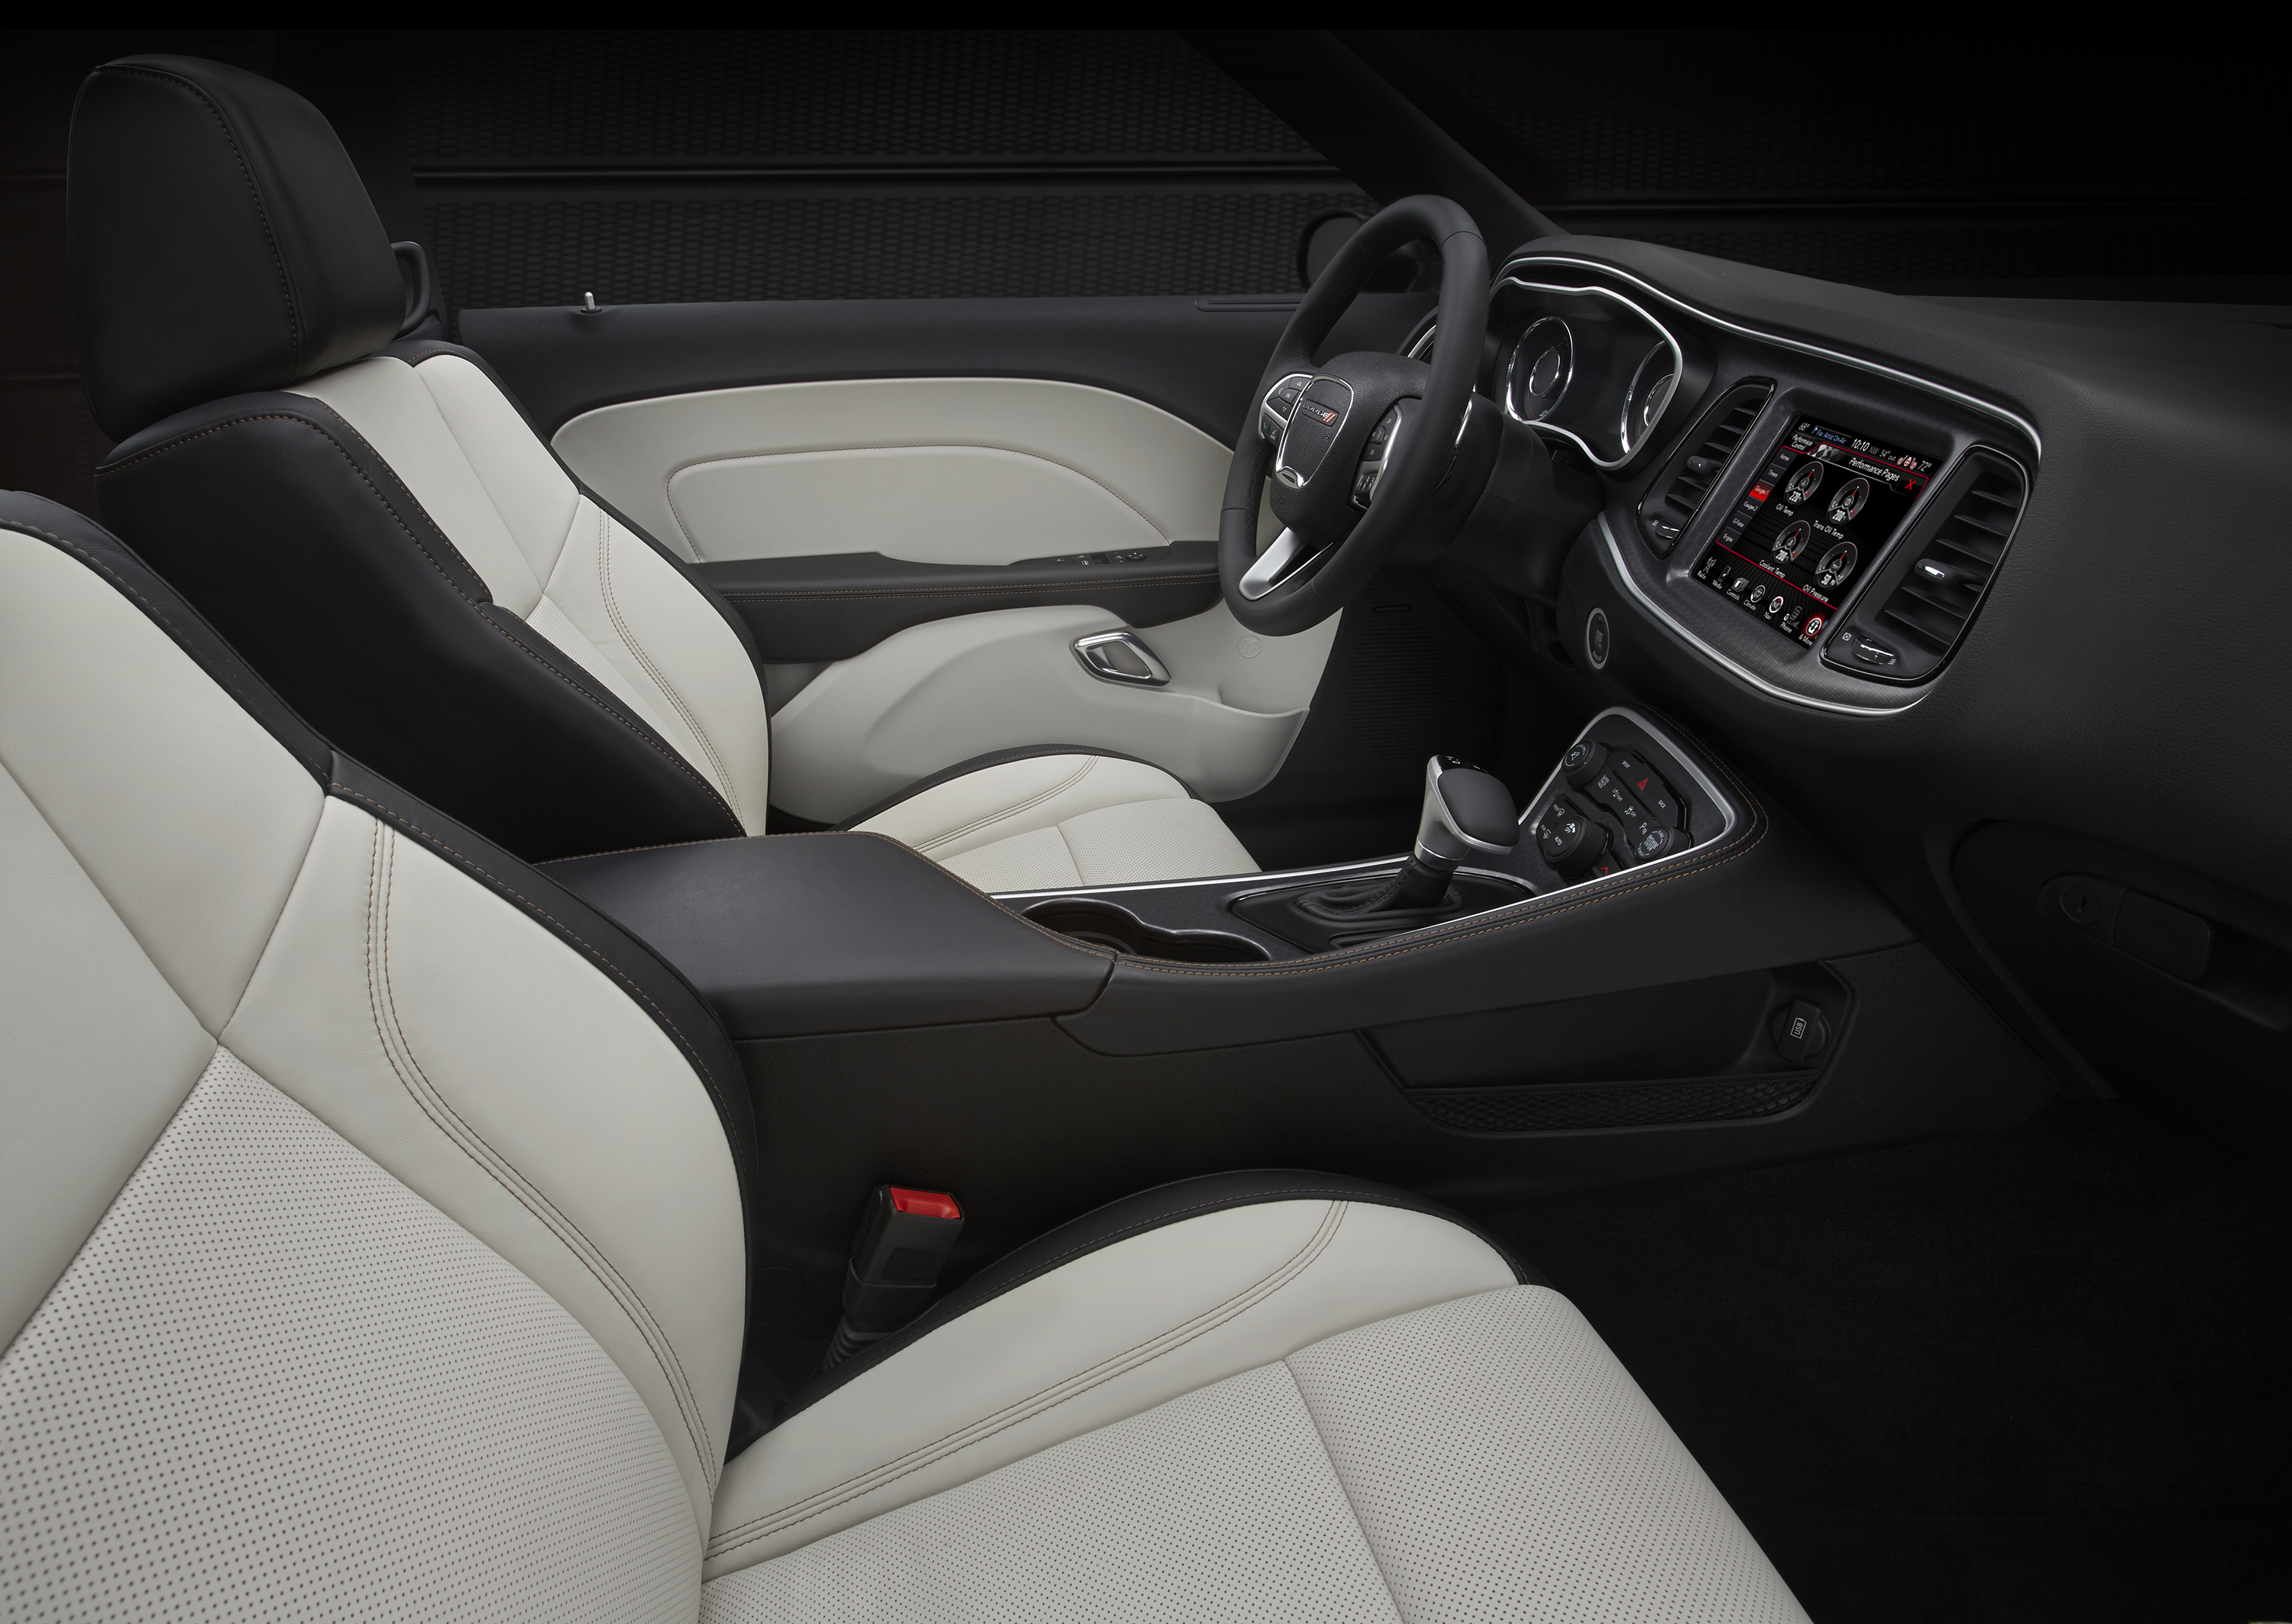 2015 Dodge Challenger SXT / R/T Plus Black And Pearl Leather (Photo 2 of 39)